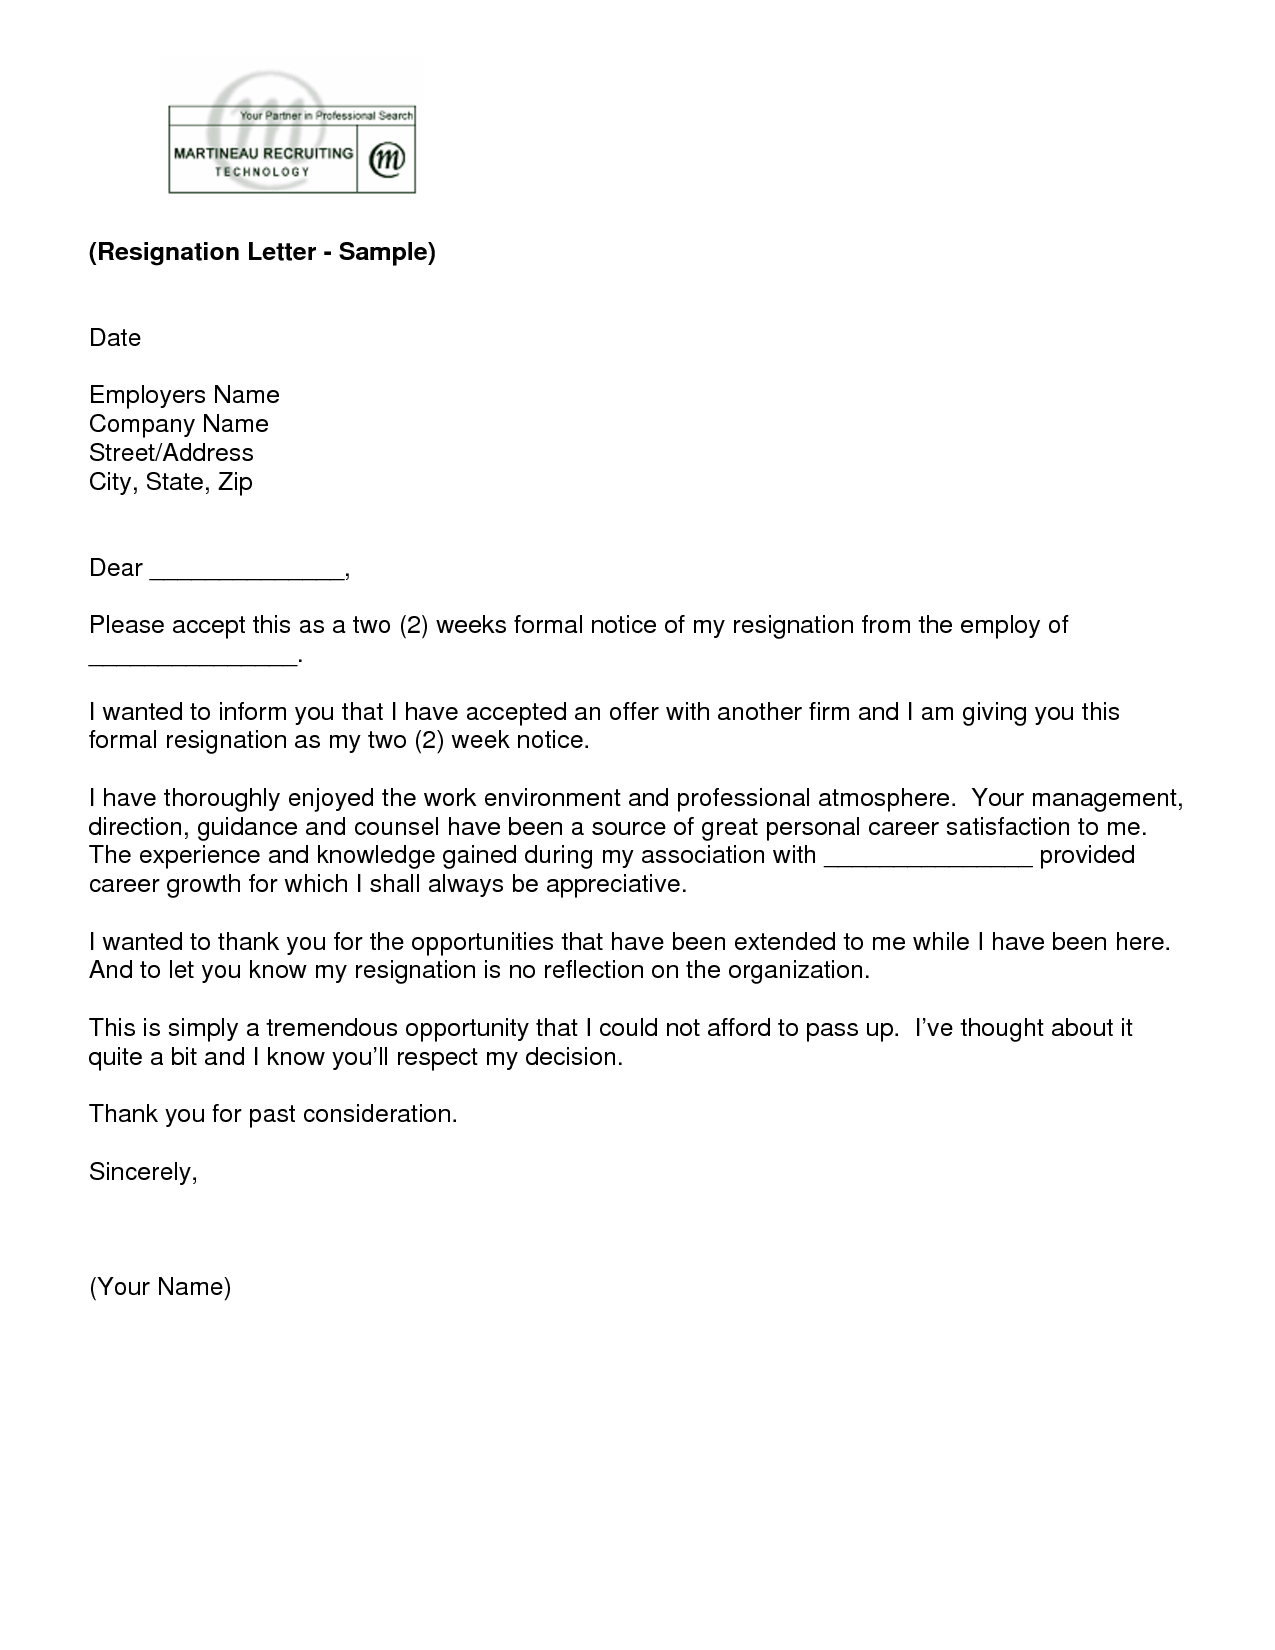 Two Weeksu0027 Notice Resignation Letter Samples  Two Weeks Notice Letter